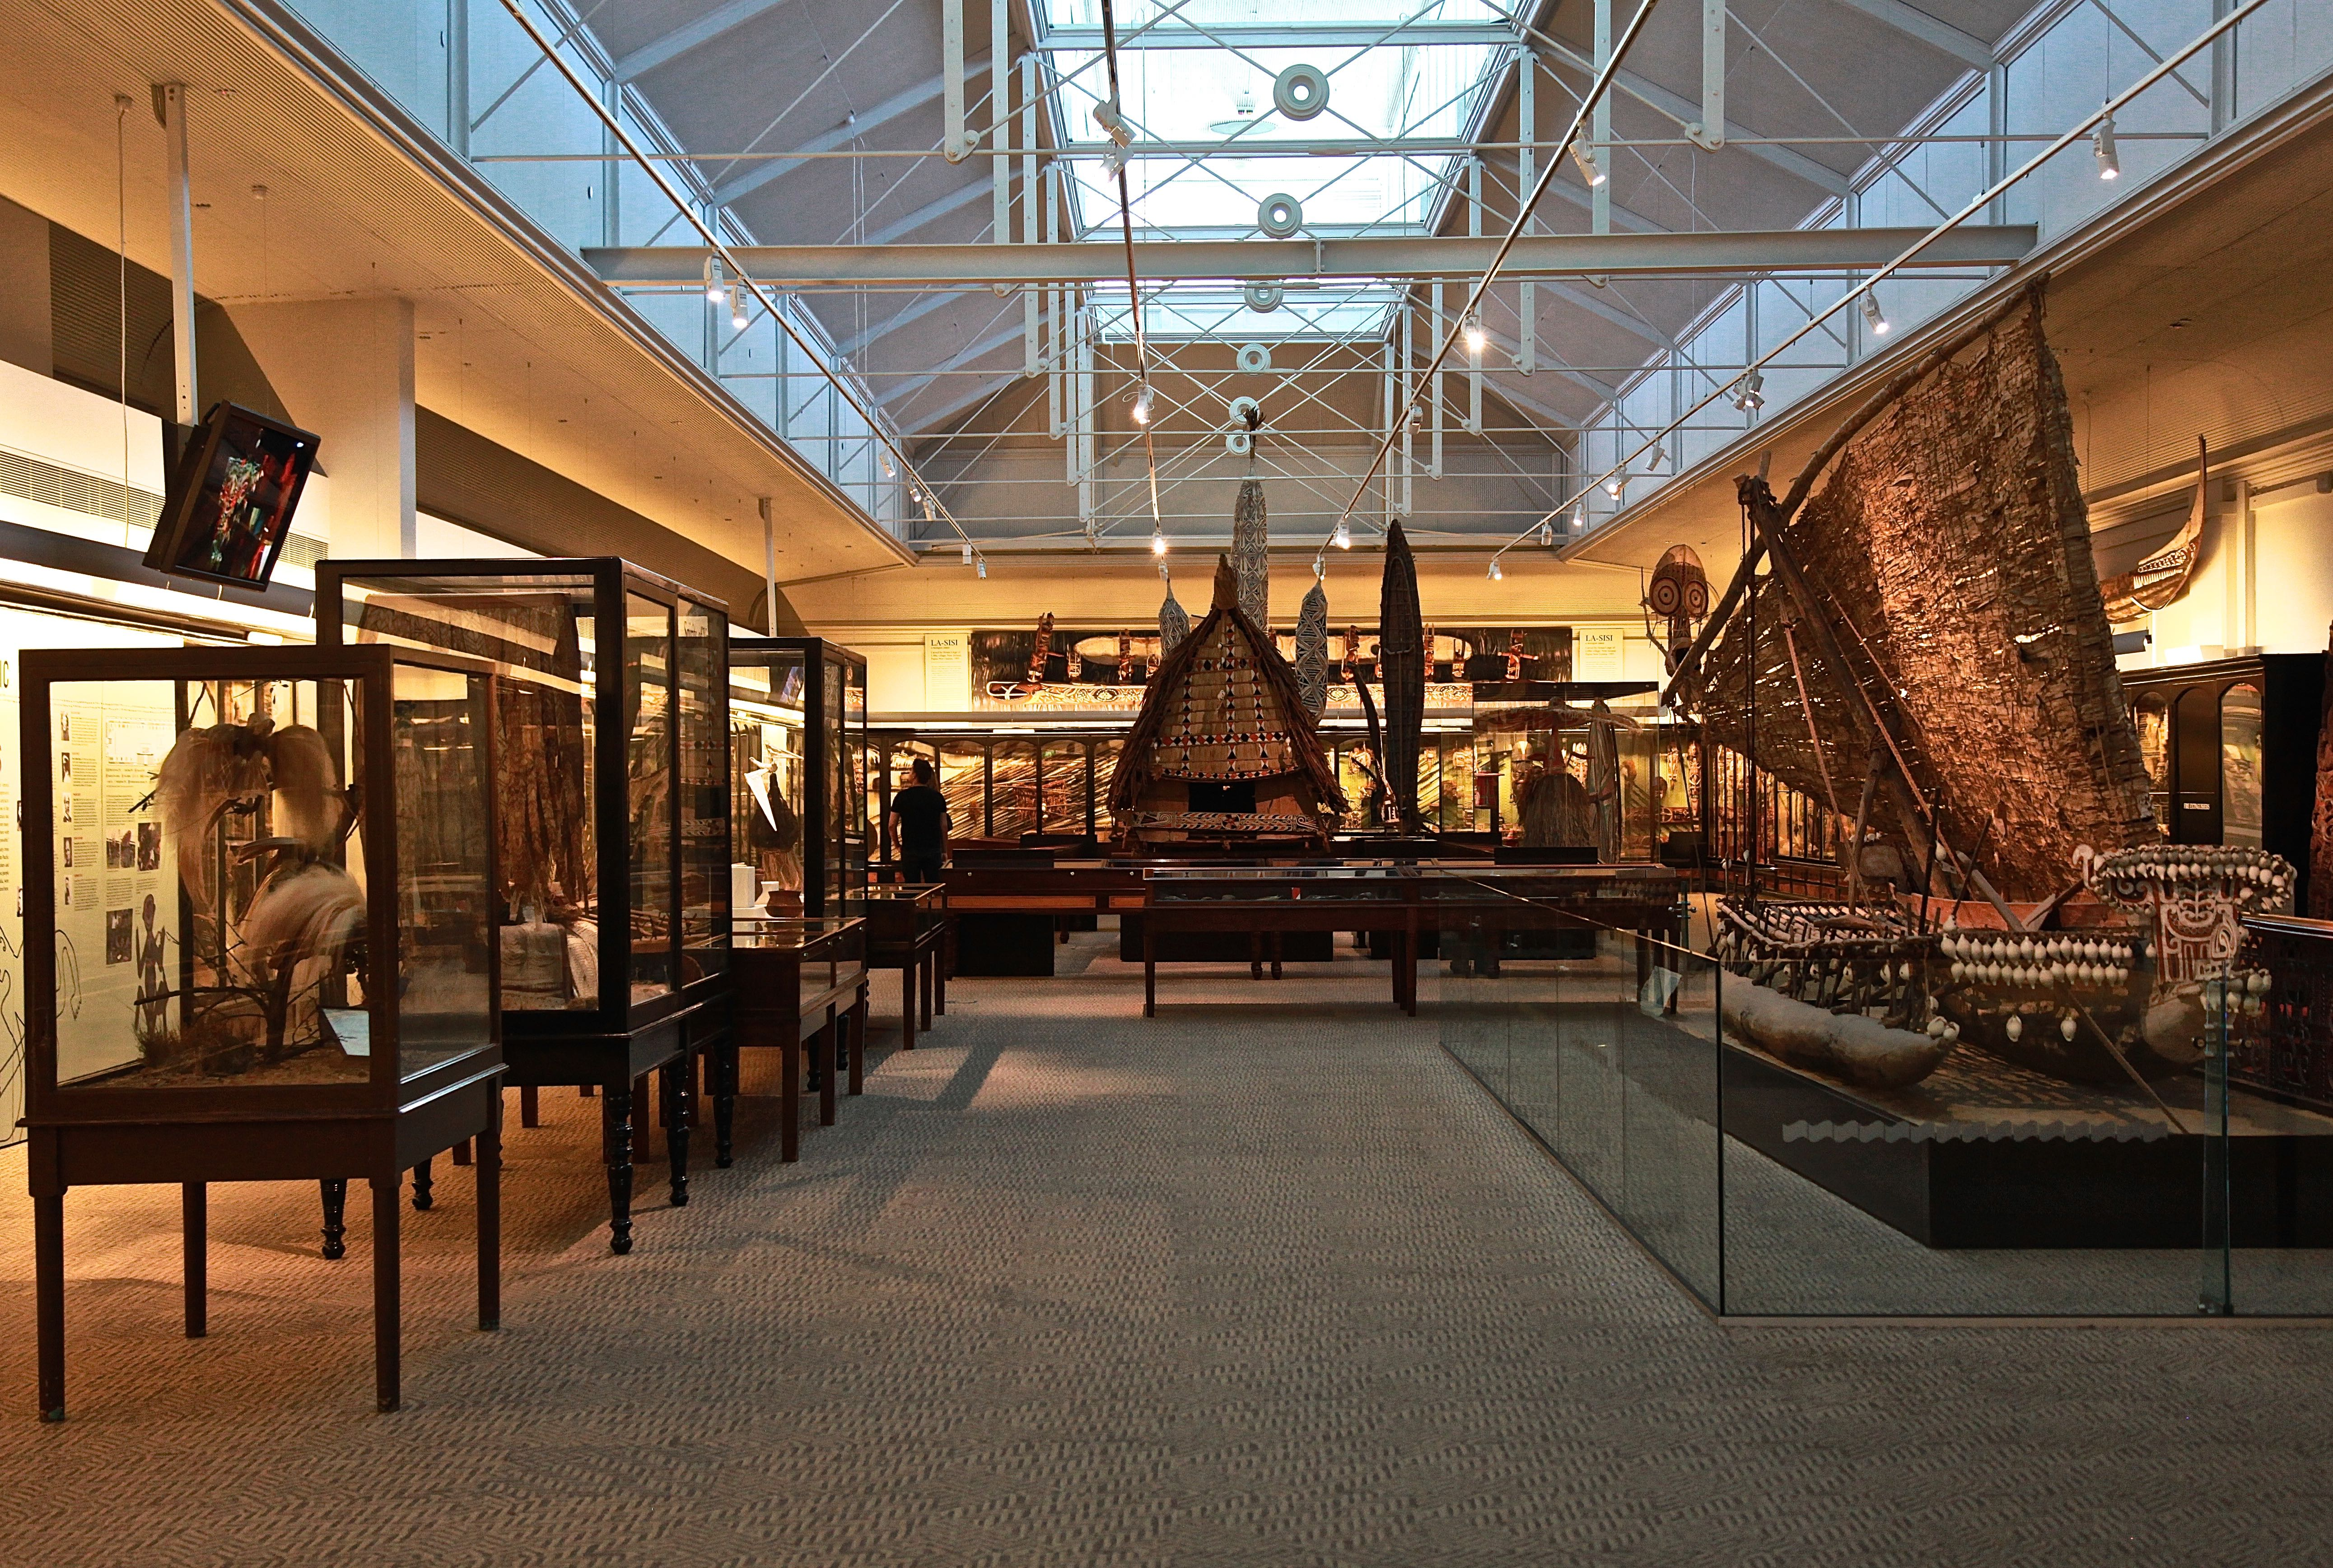 Australian Museum Sydney, Out and about in Sydney museums searching for migrant stories ...